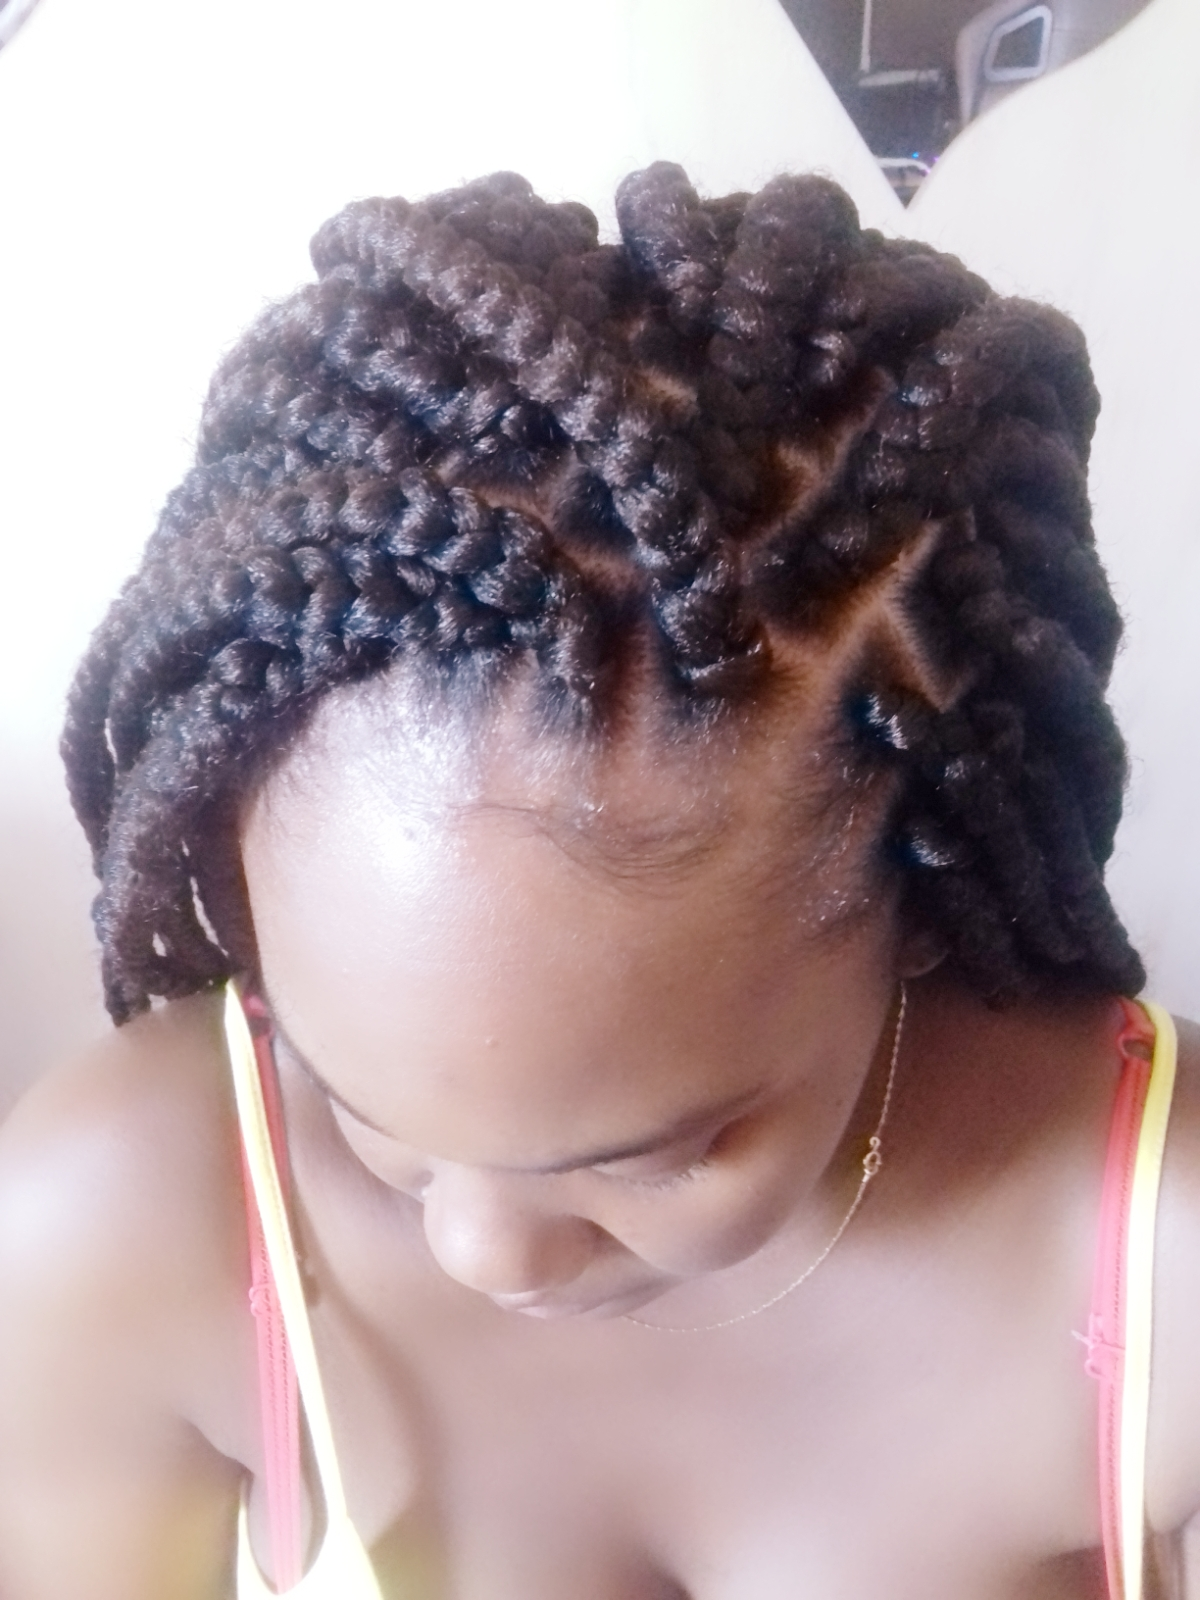 salon de coiffure afro tresse tresses box braids crochet braids vanilles tissages paris 75 77 78 91 92 93 94 95 FXMXFHBF